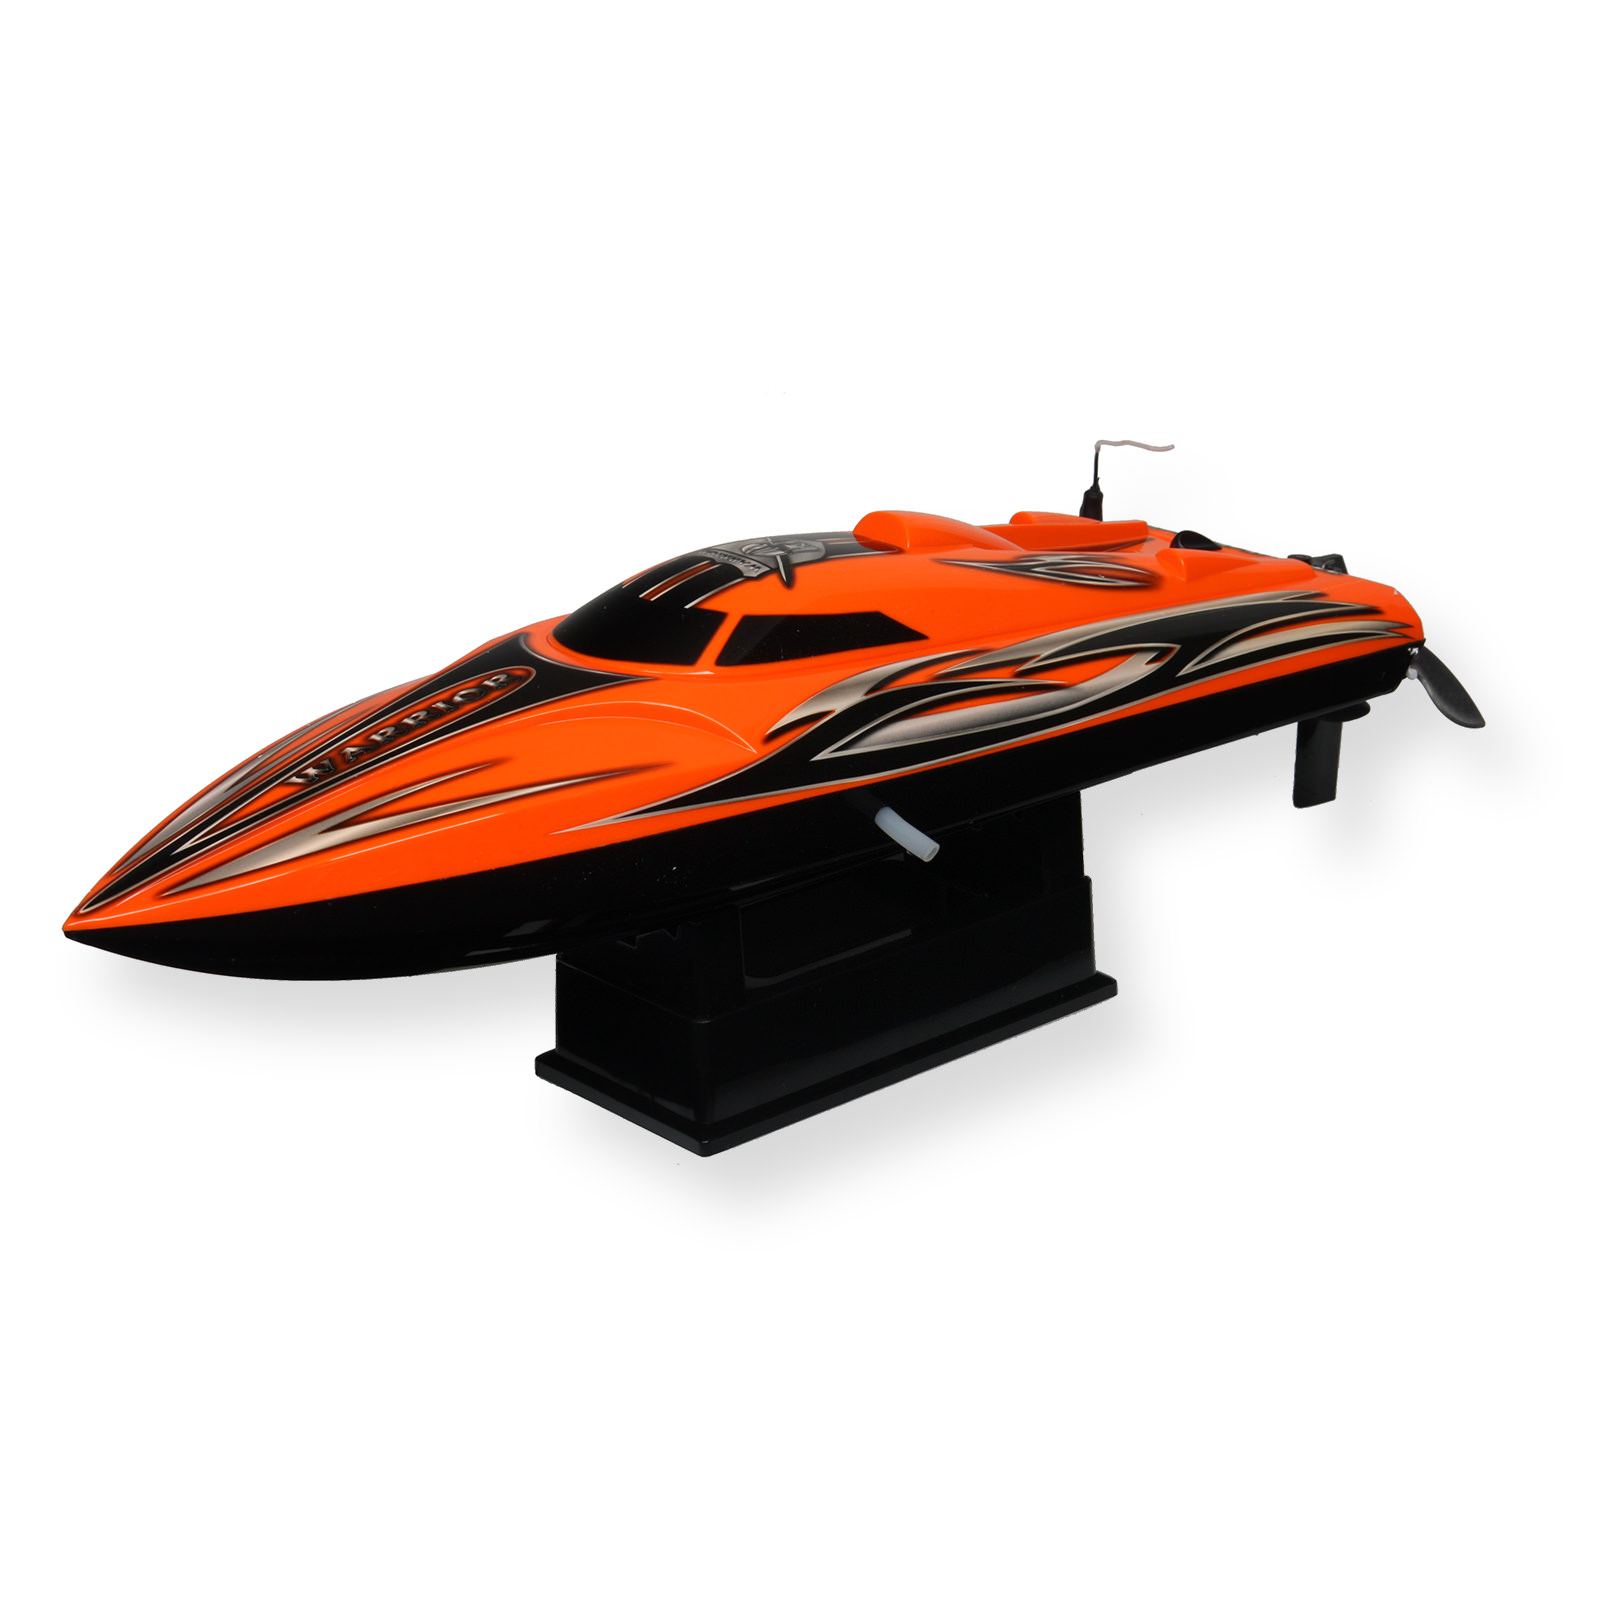 Joysway 8206 Offshore Lite Warrior V3 2.4Ghz Deep Vee RC Racing Boat